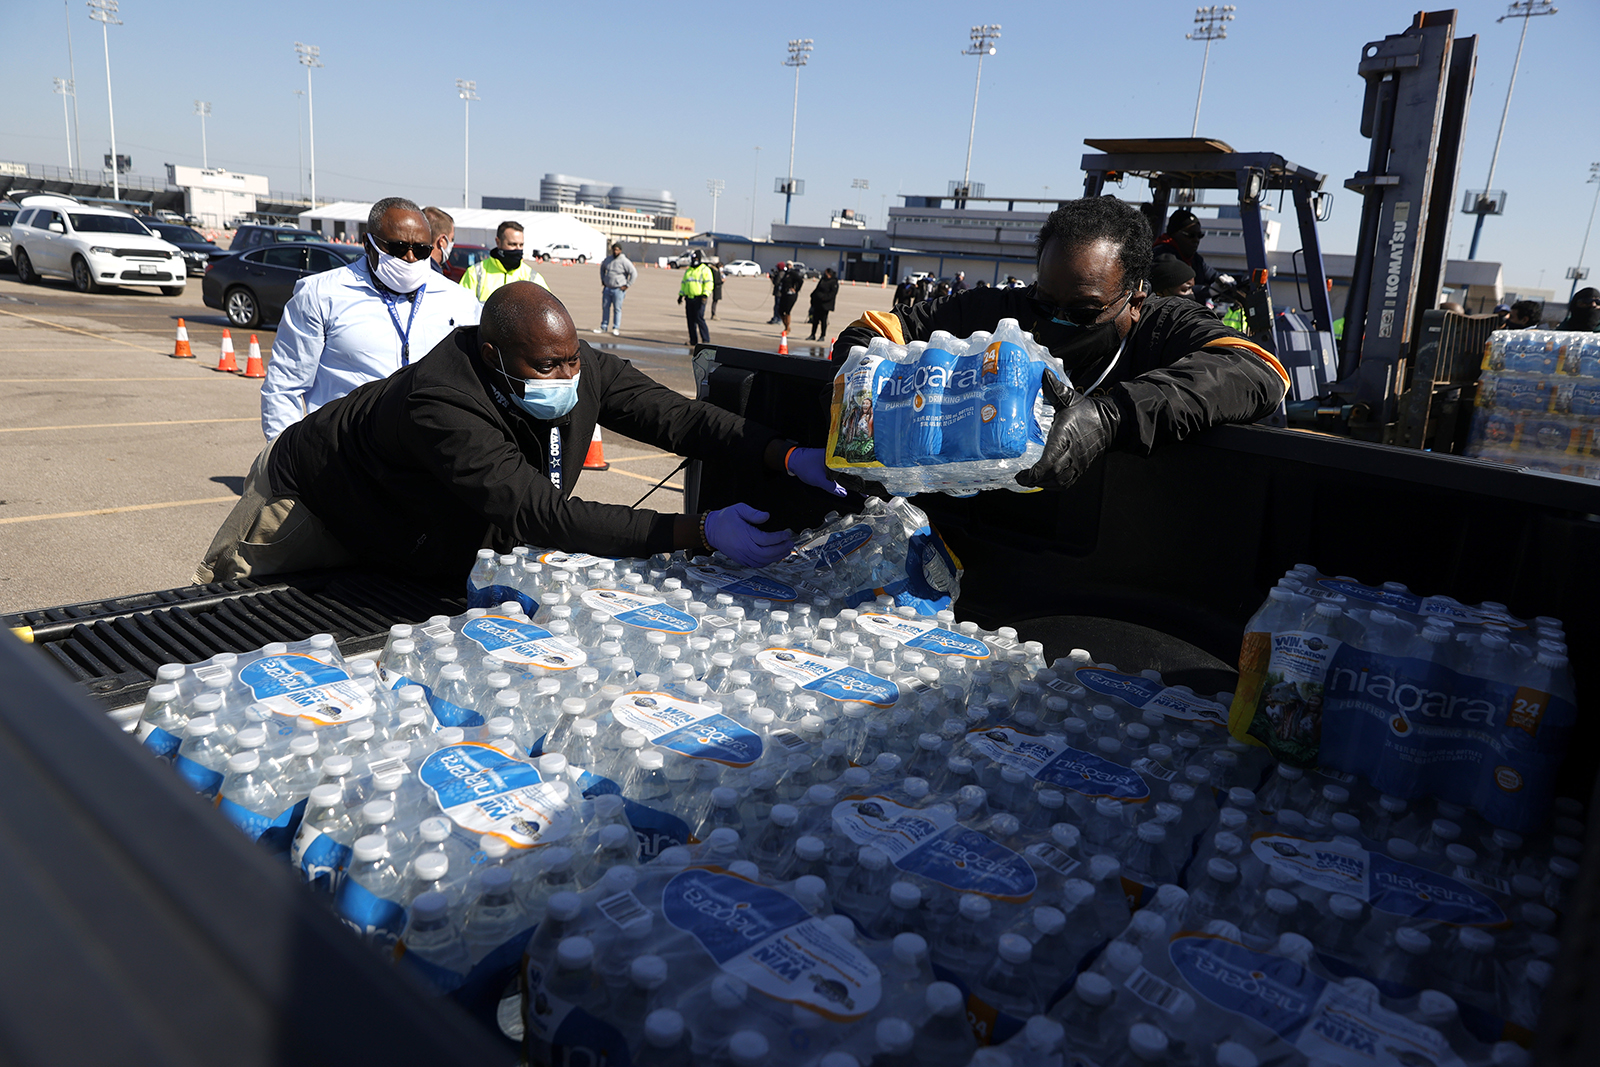 Volunteers load cases of water into the bed of a truck during a mass water distribution at Delmar Stadium on February 19 in Houston.